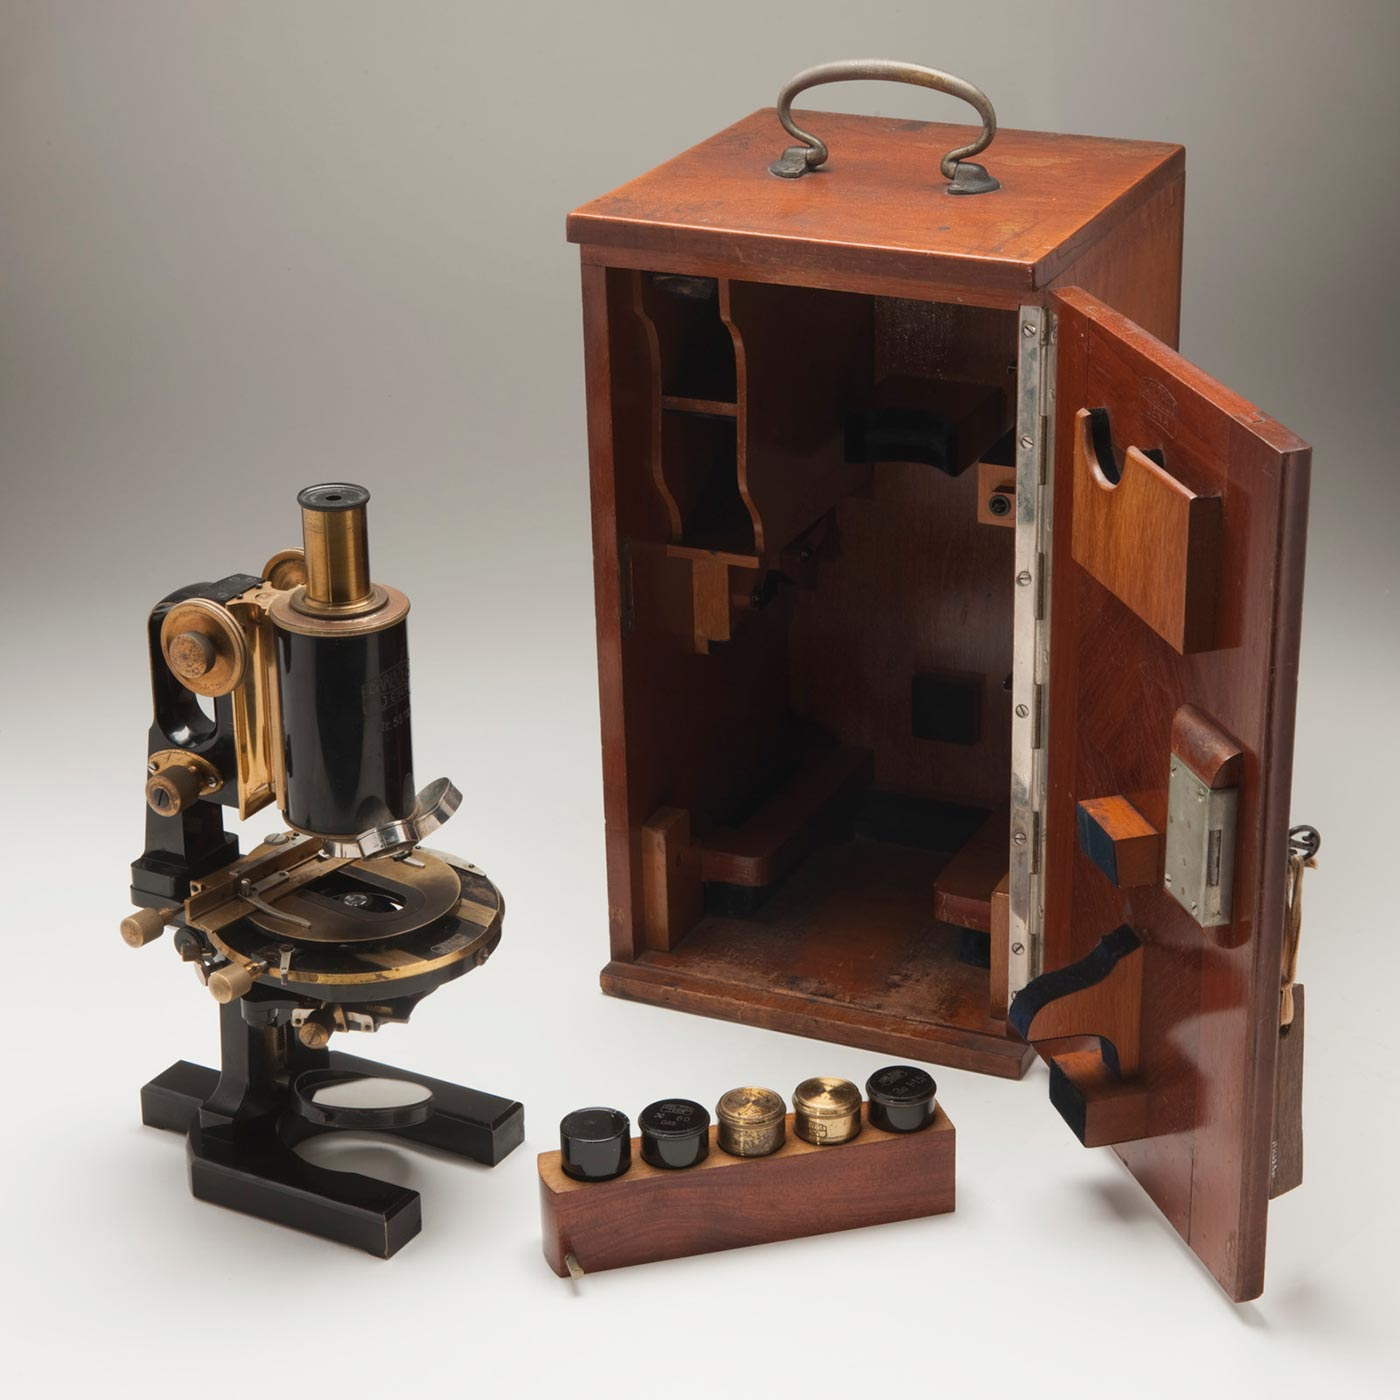 A small black telescope with brass fittings sits outside its wooden storage box.